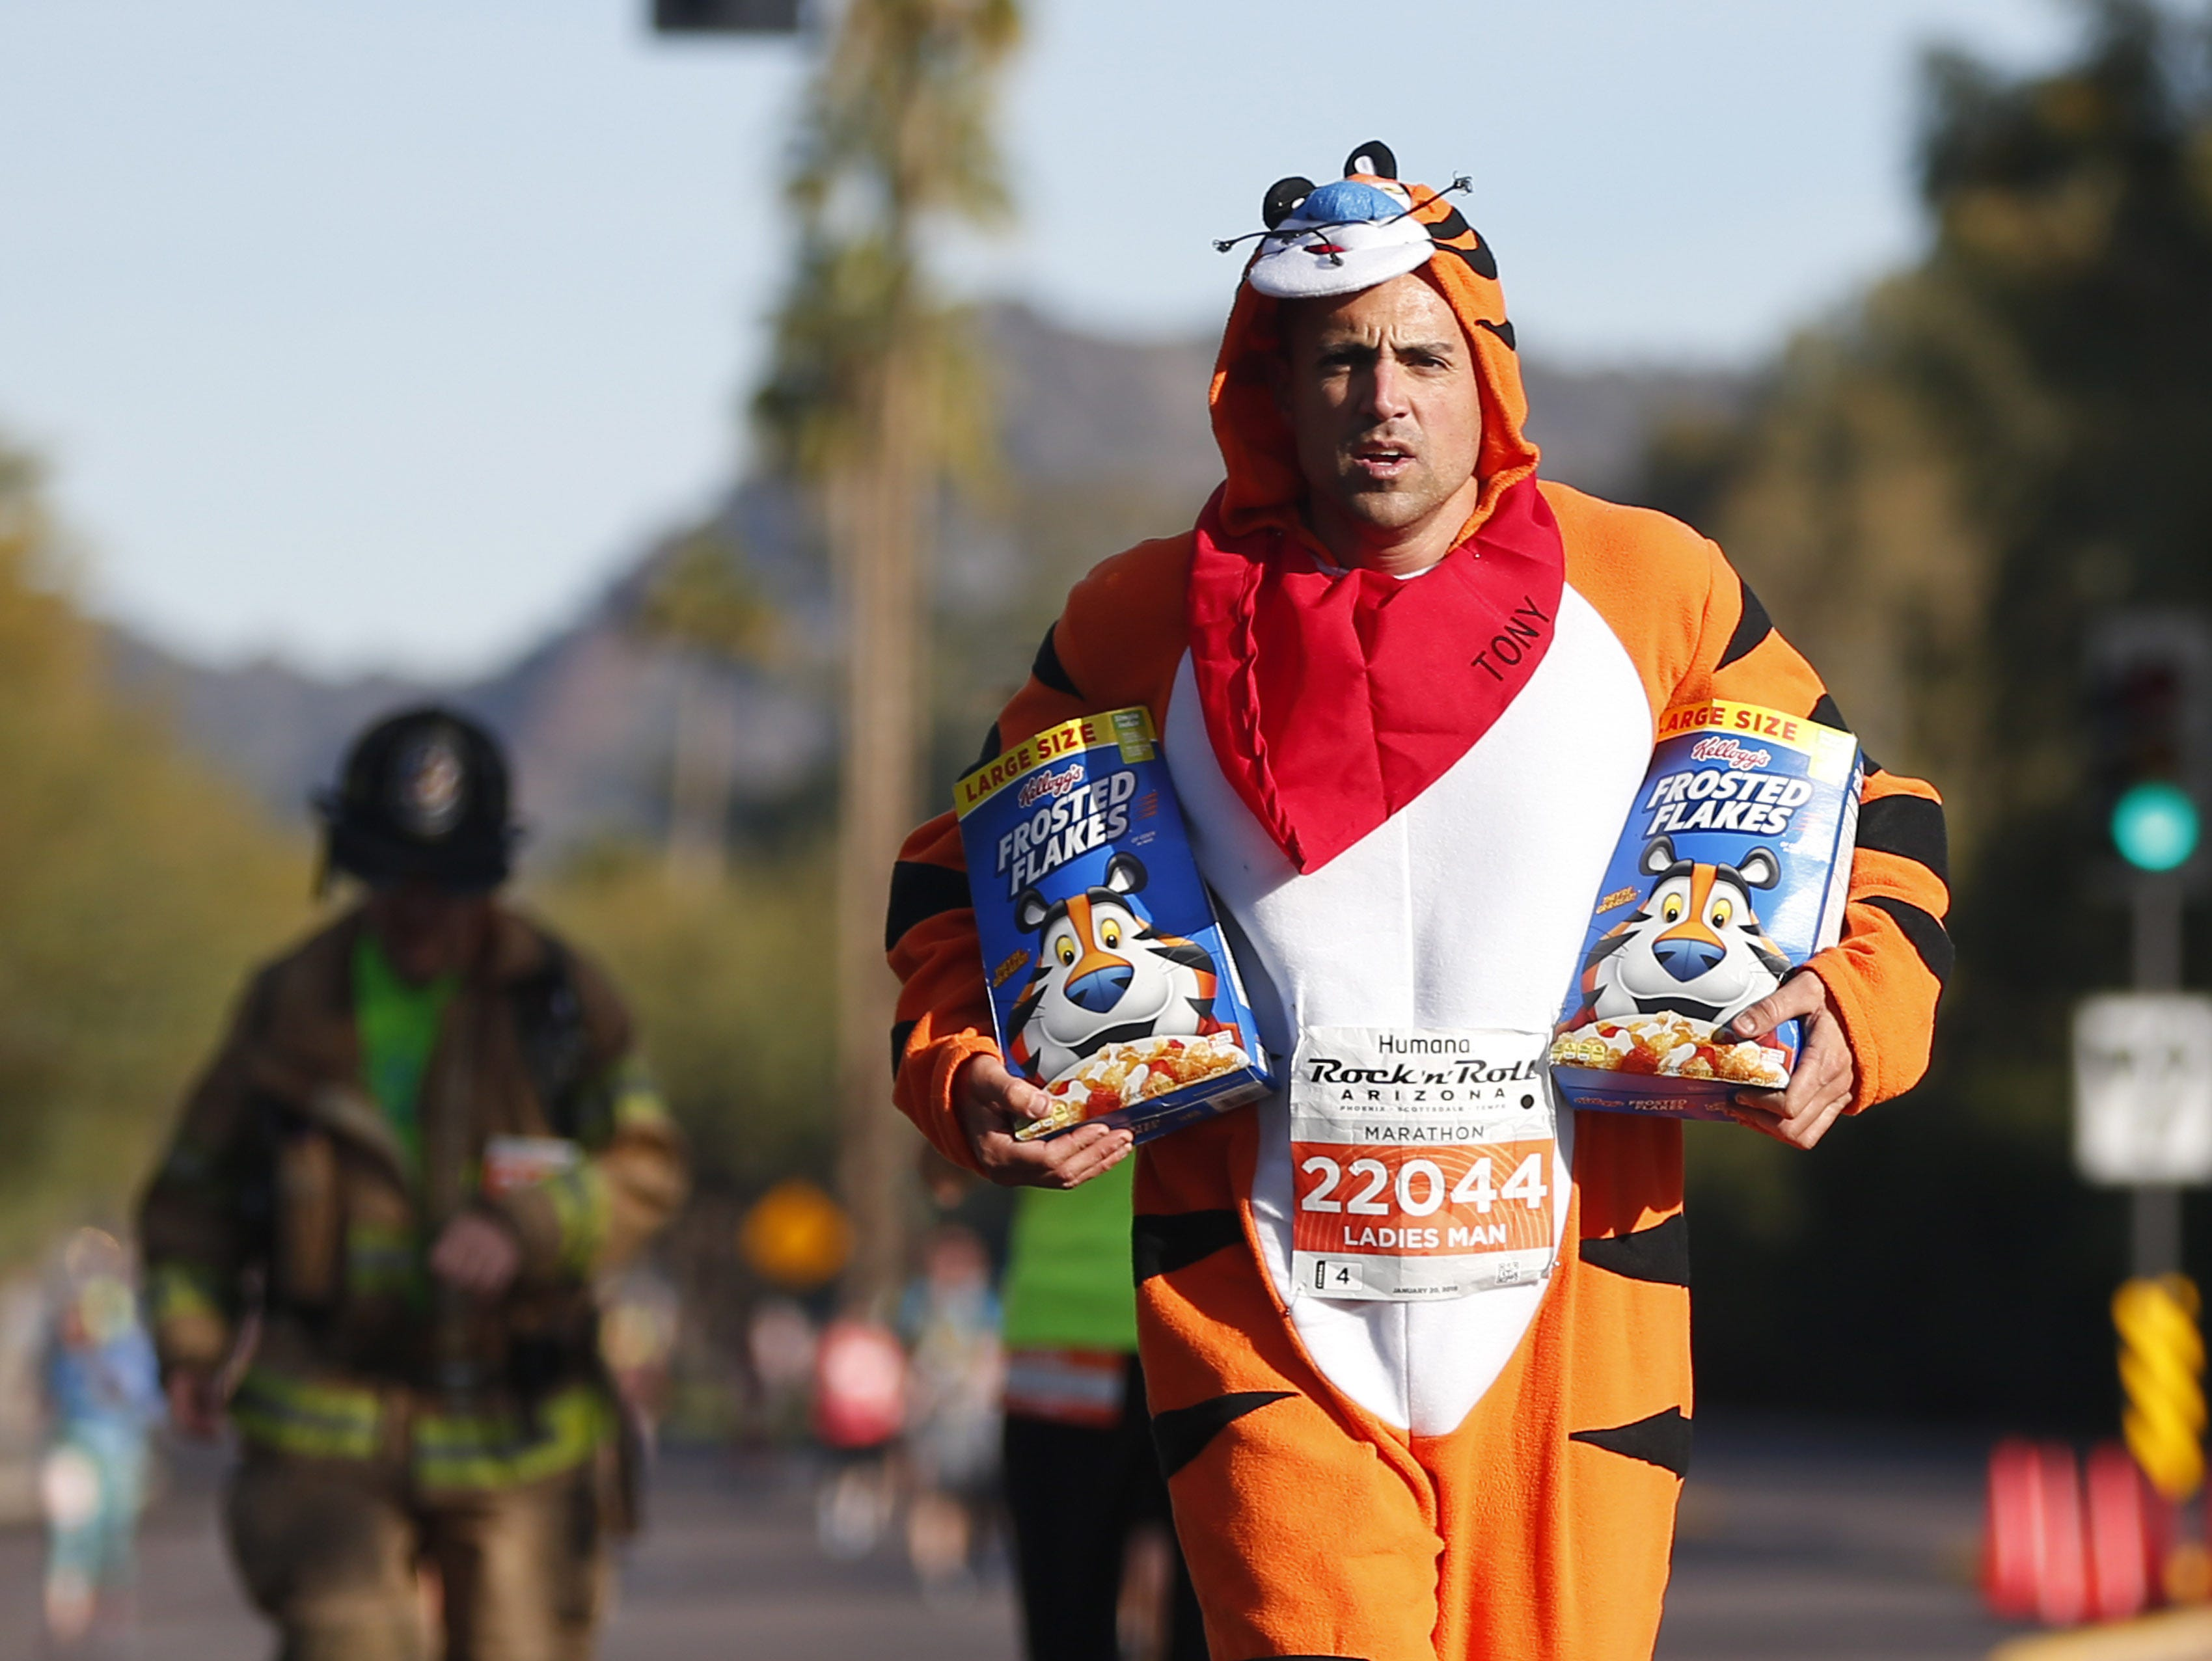 Sam Goldberg runs with cereal on 24th St. at the Rock 'N' Roll Marathon in Phoenix on Jan. 20, 2019.